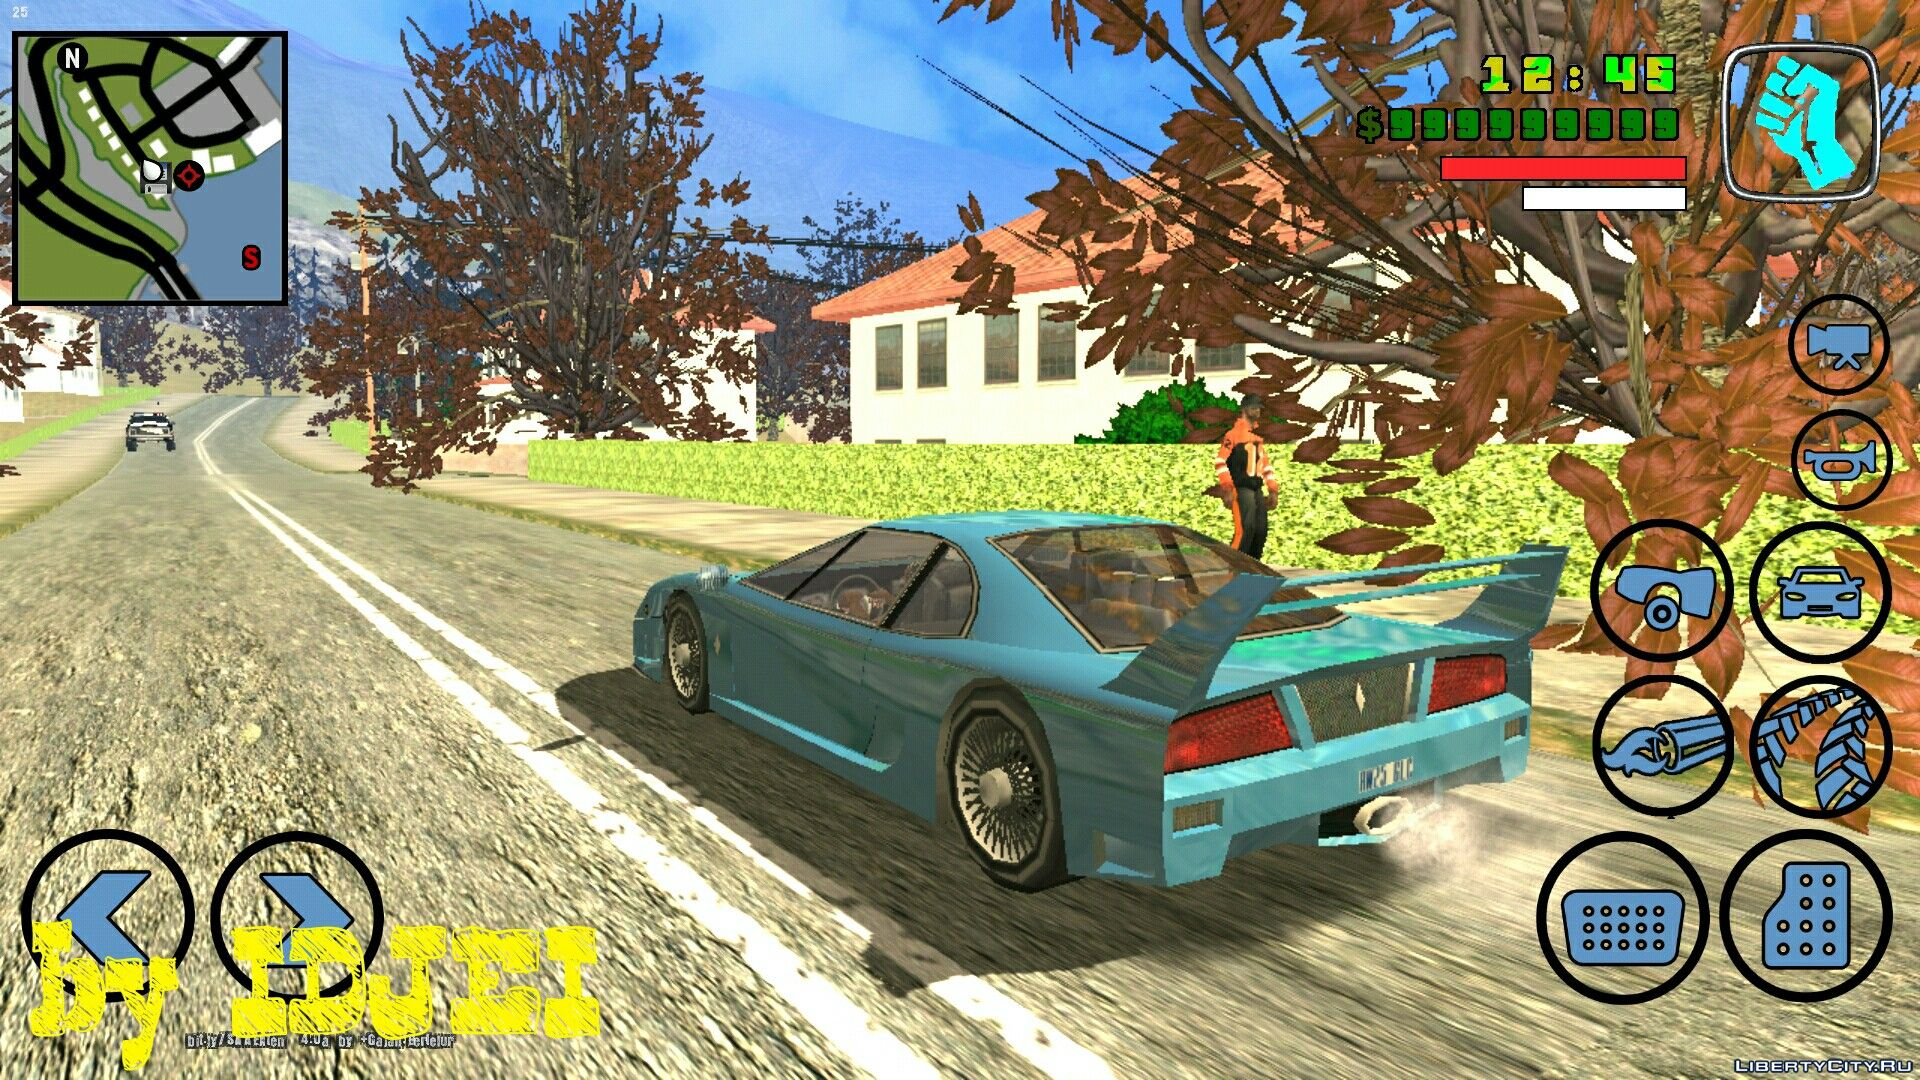 Gta san andreas heentai nackt photo